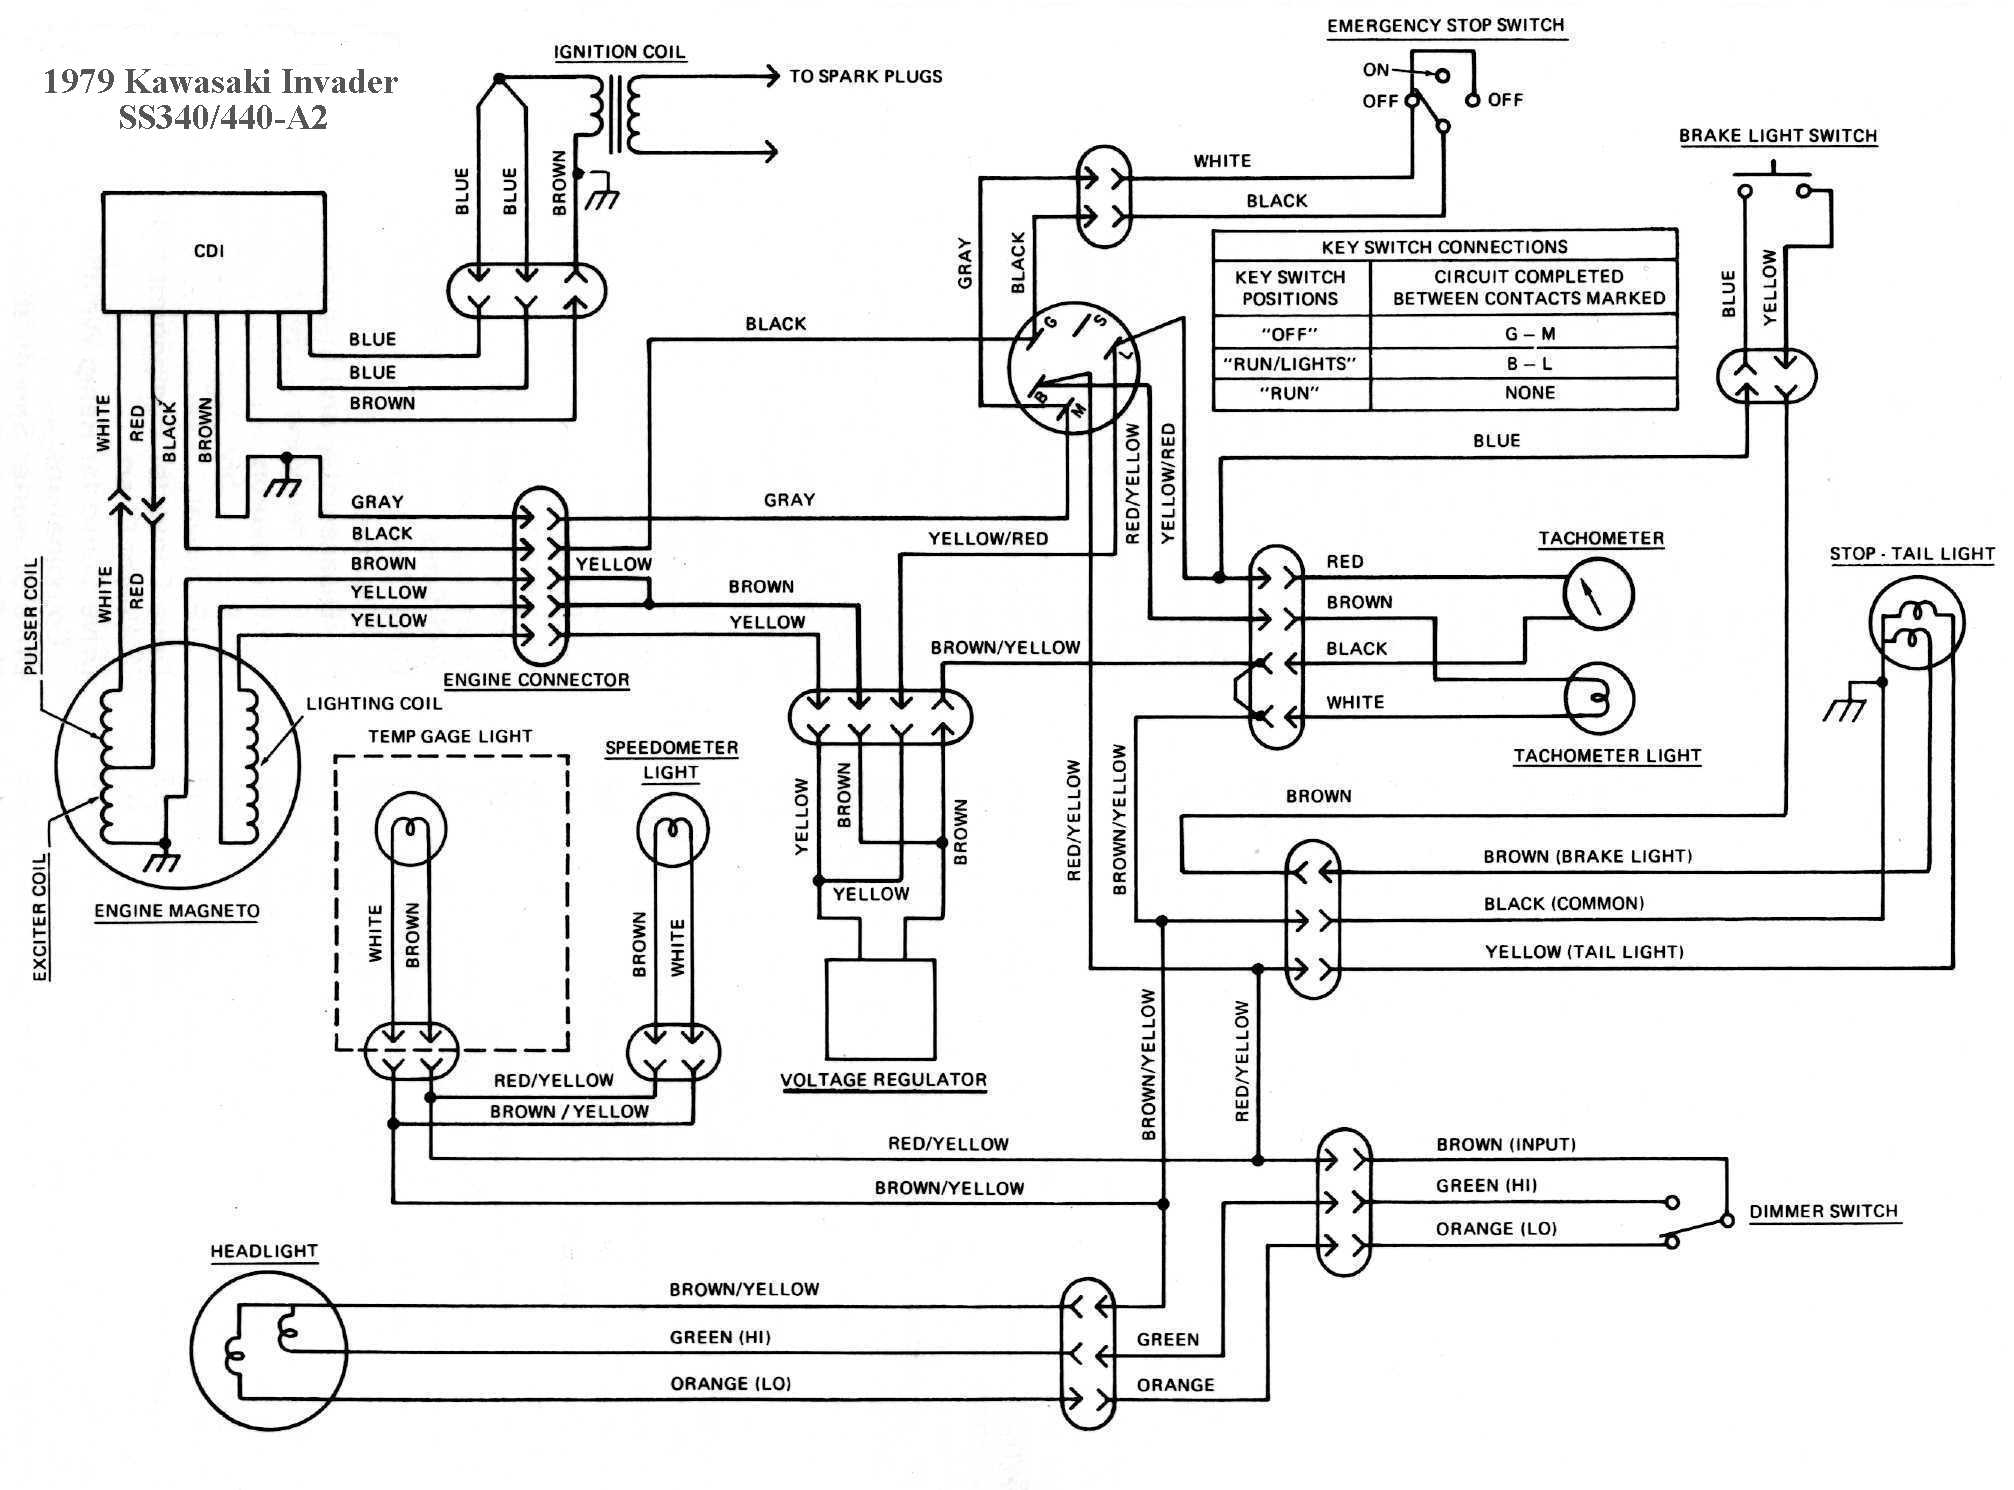 ss340a2 96 kawasaki bayou 220 wiring diagram free picture 96 wirning wiring diagrams for free at webbmarketing.co